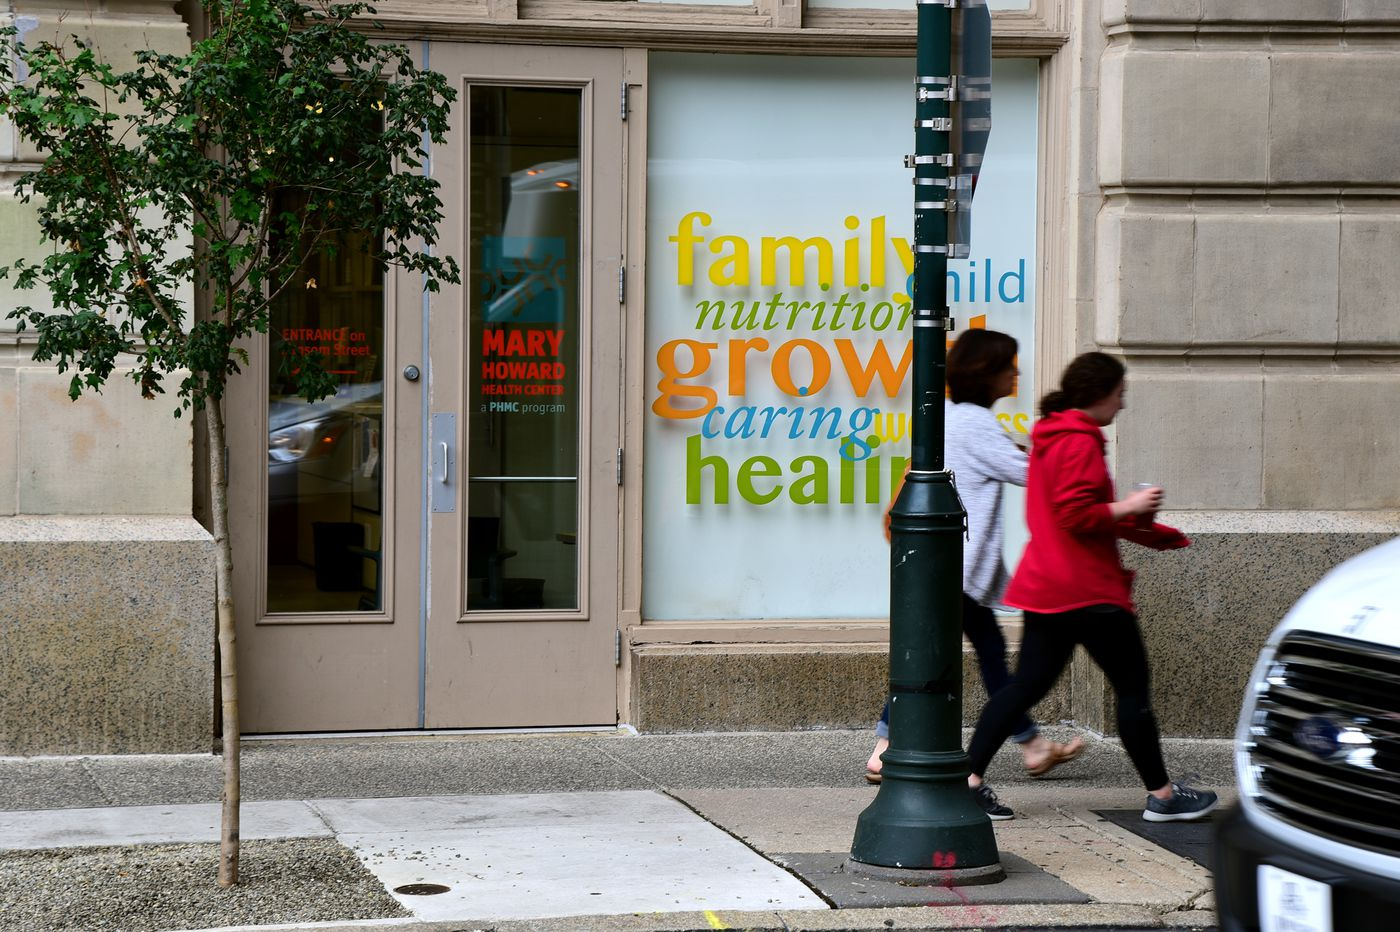 In a rare move, workers at 6 low-income health centers in Philly vote to unionize